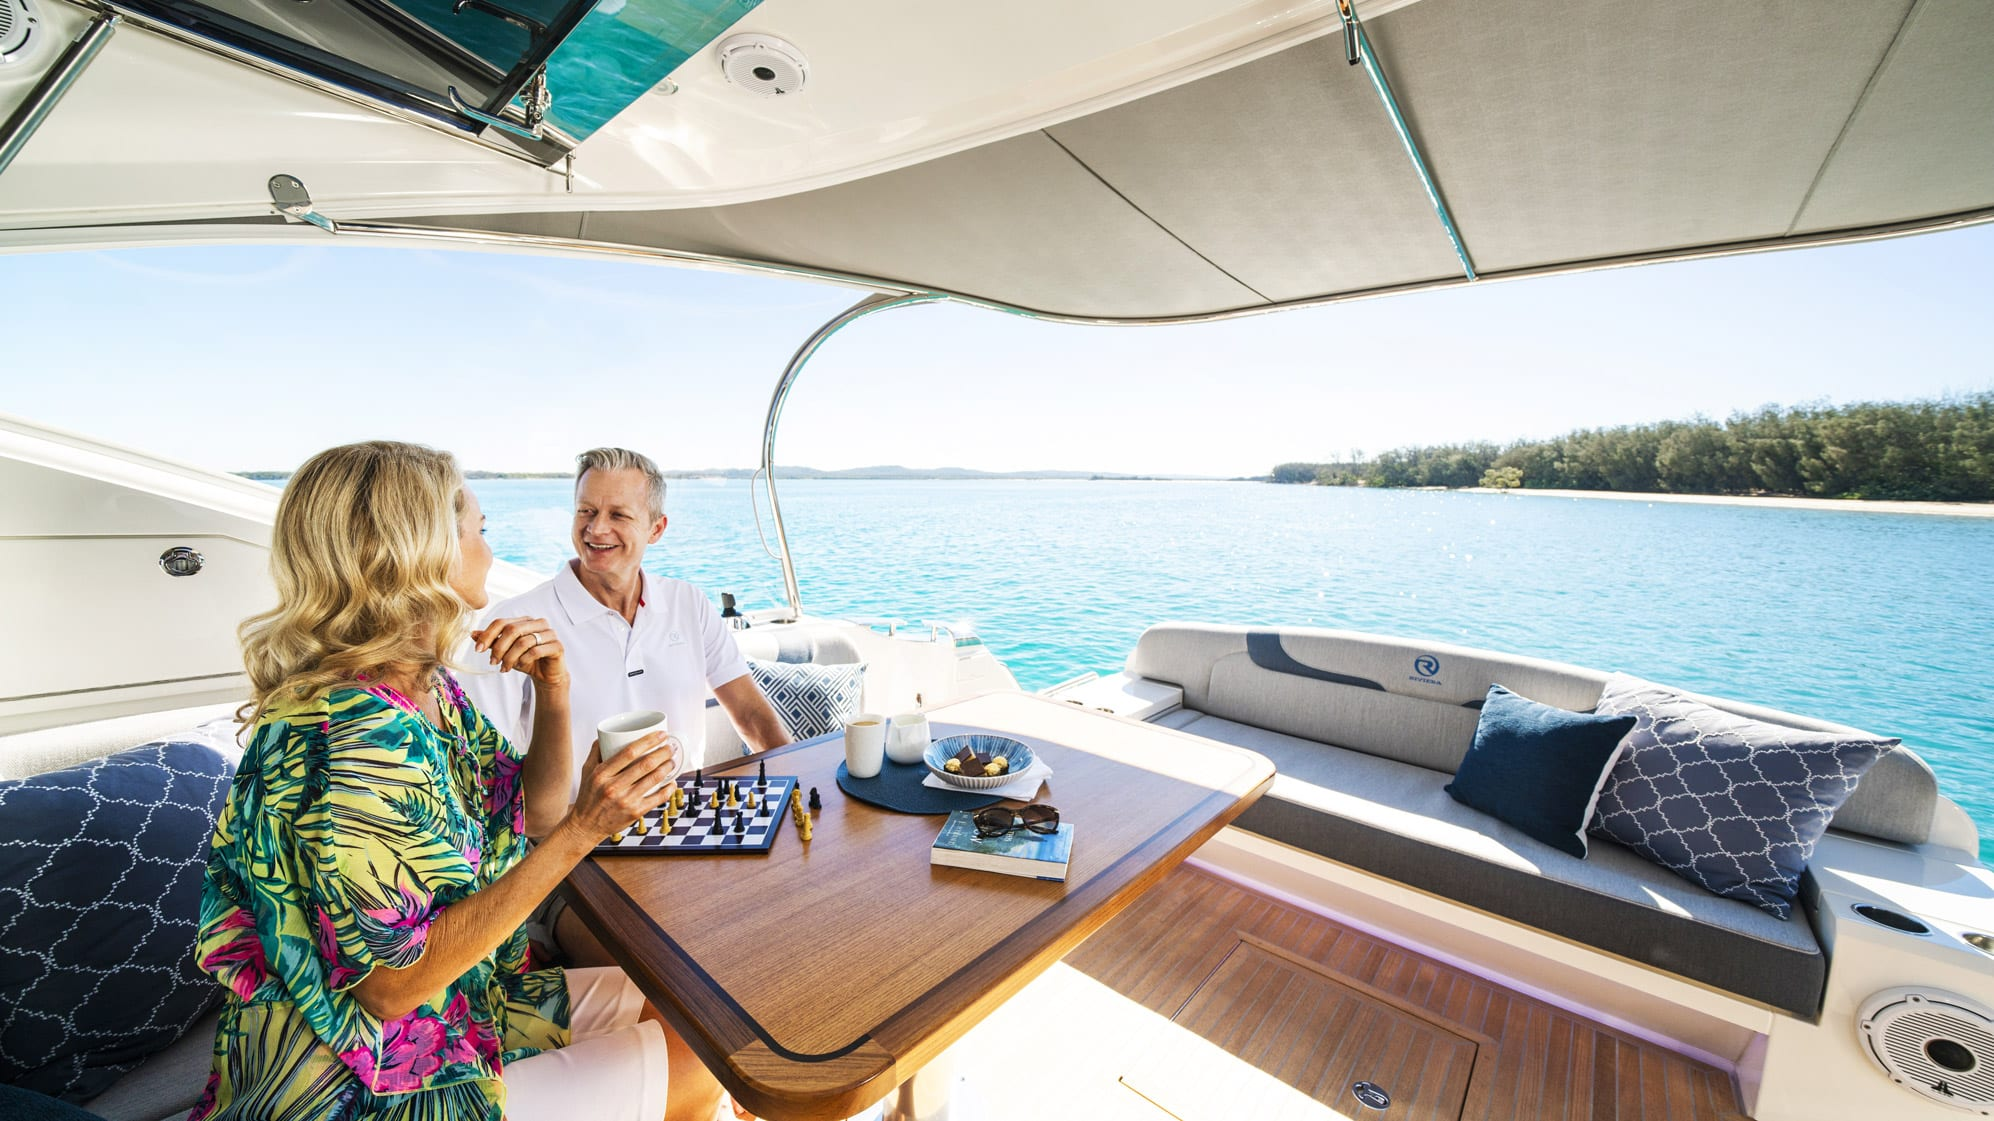 US couple captivated by squeaky sand, manta rays and their luxurious new Riviera 5400 Sport Yacht